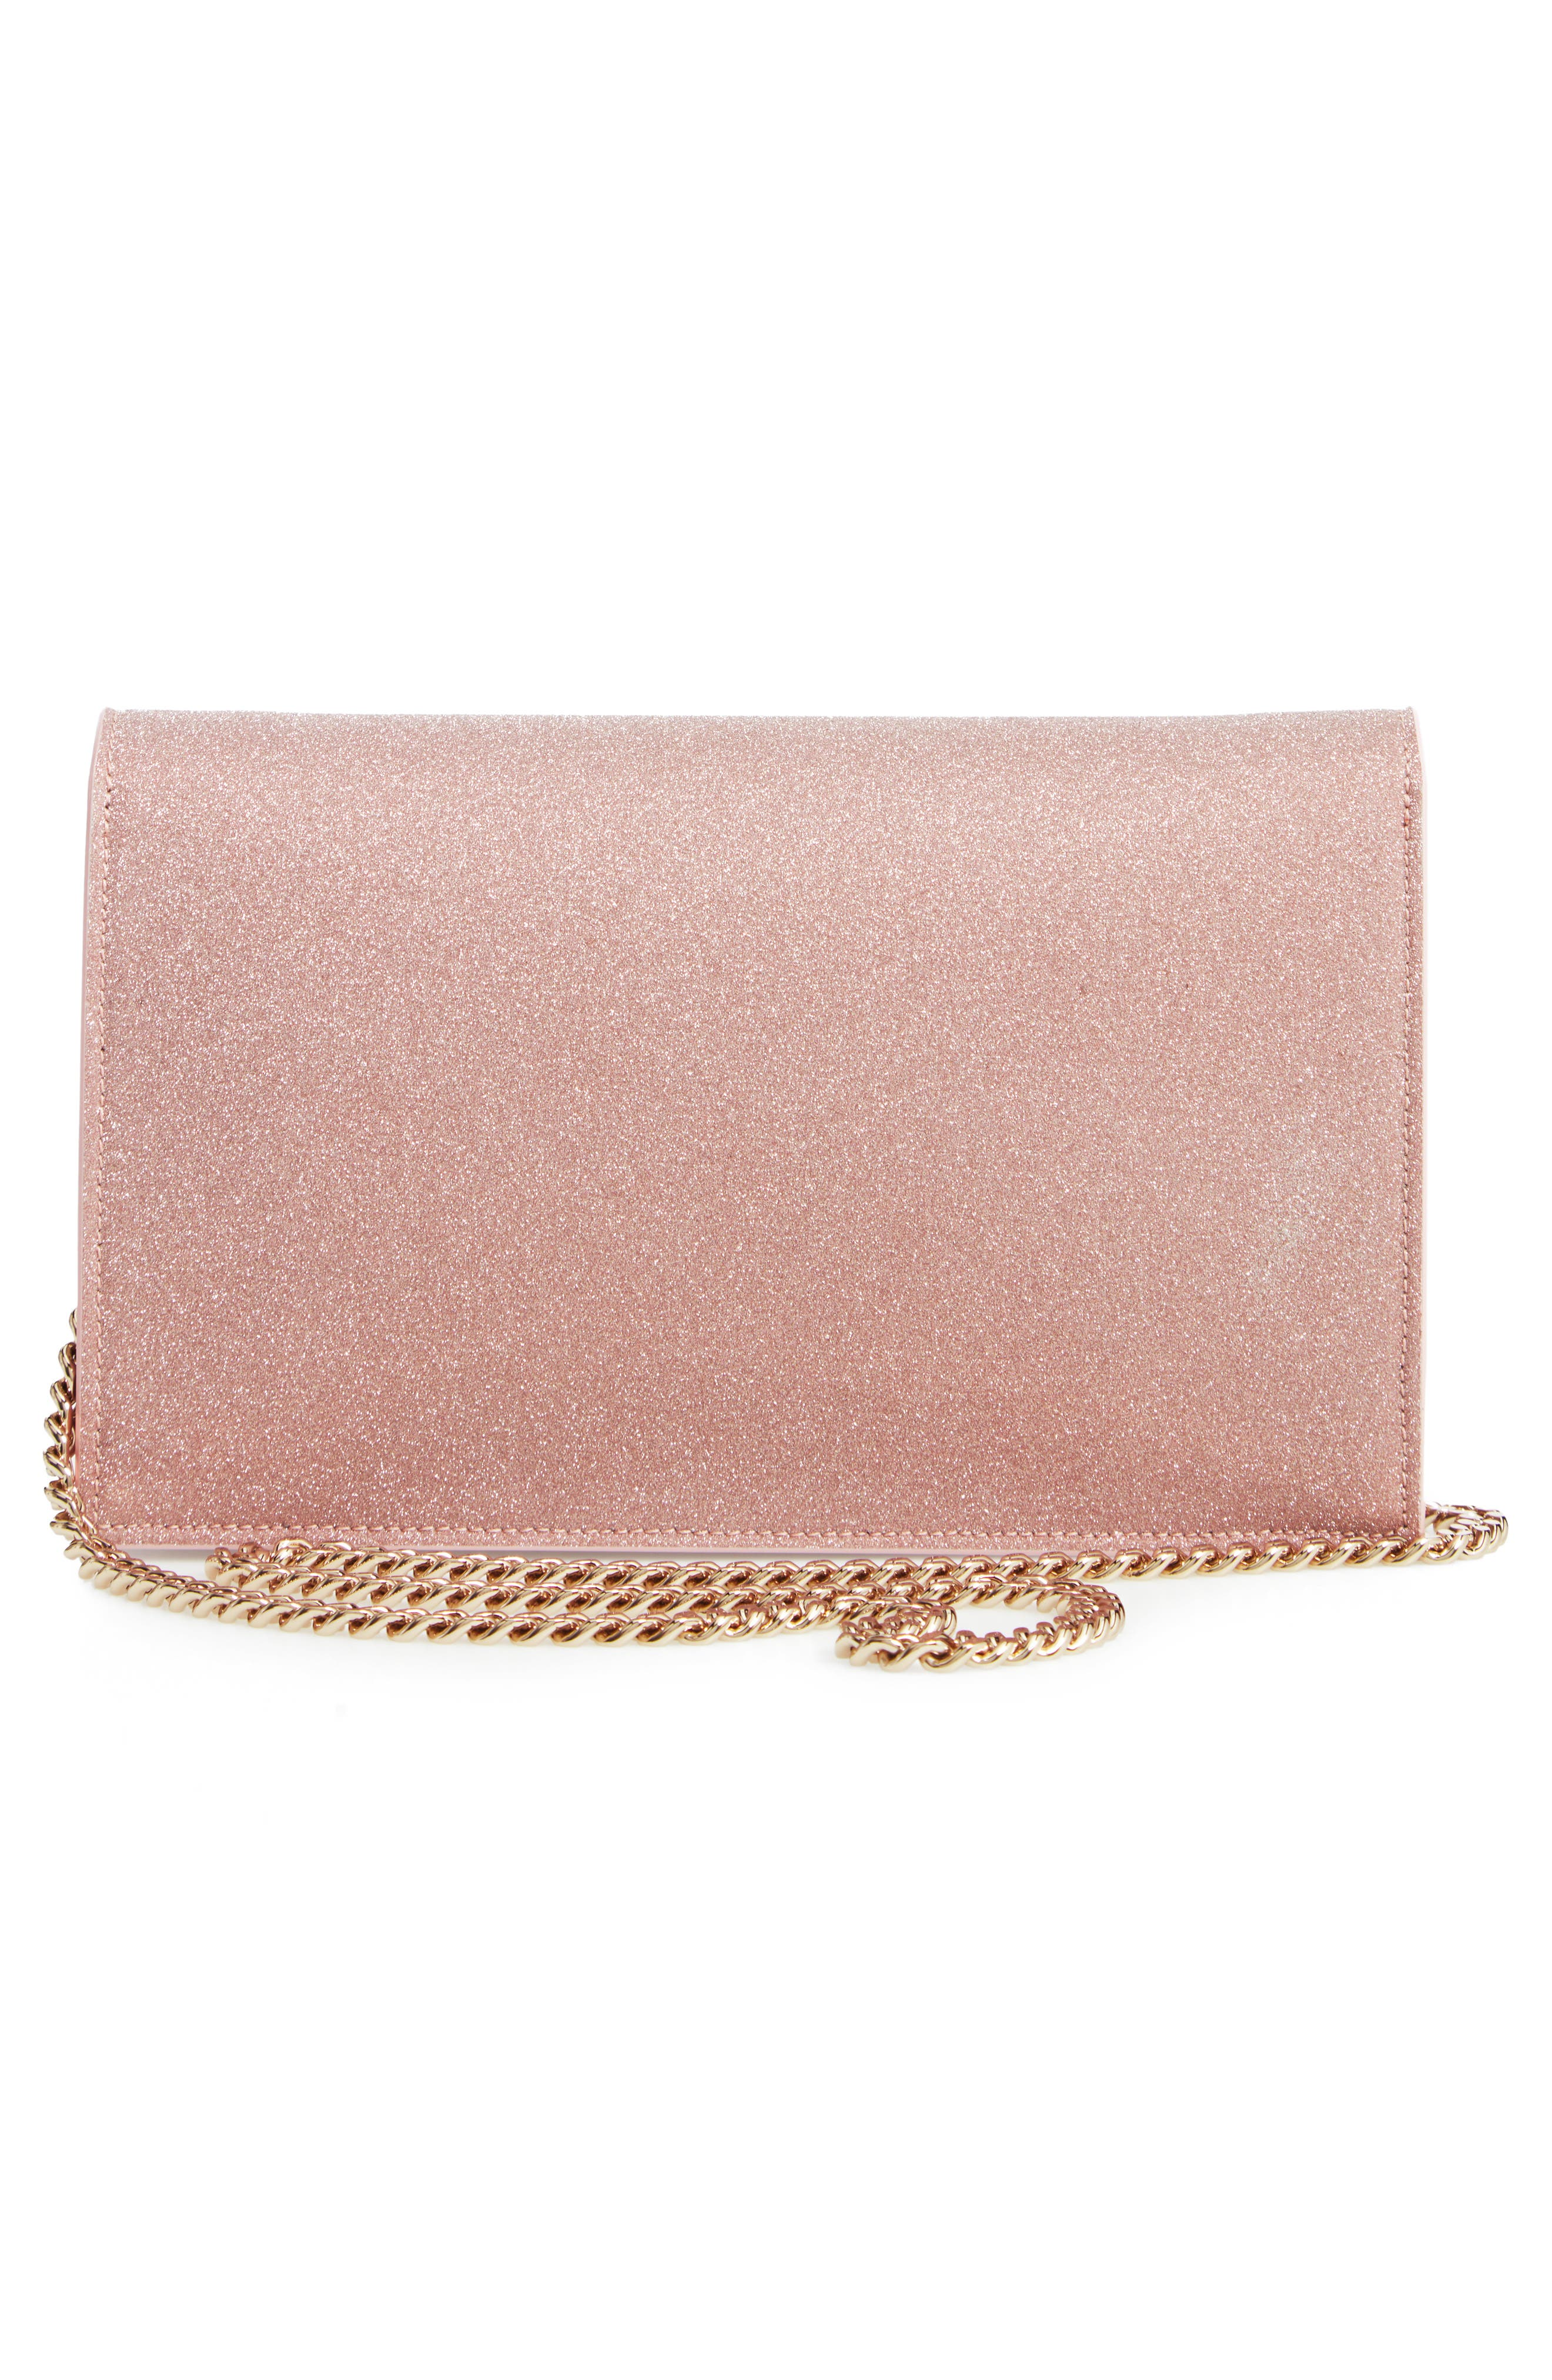 Lizzie Glitter Clutch,                             Alternate thumbnail 3, color,                             BALLET PINK